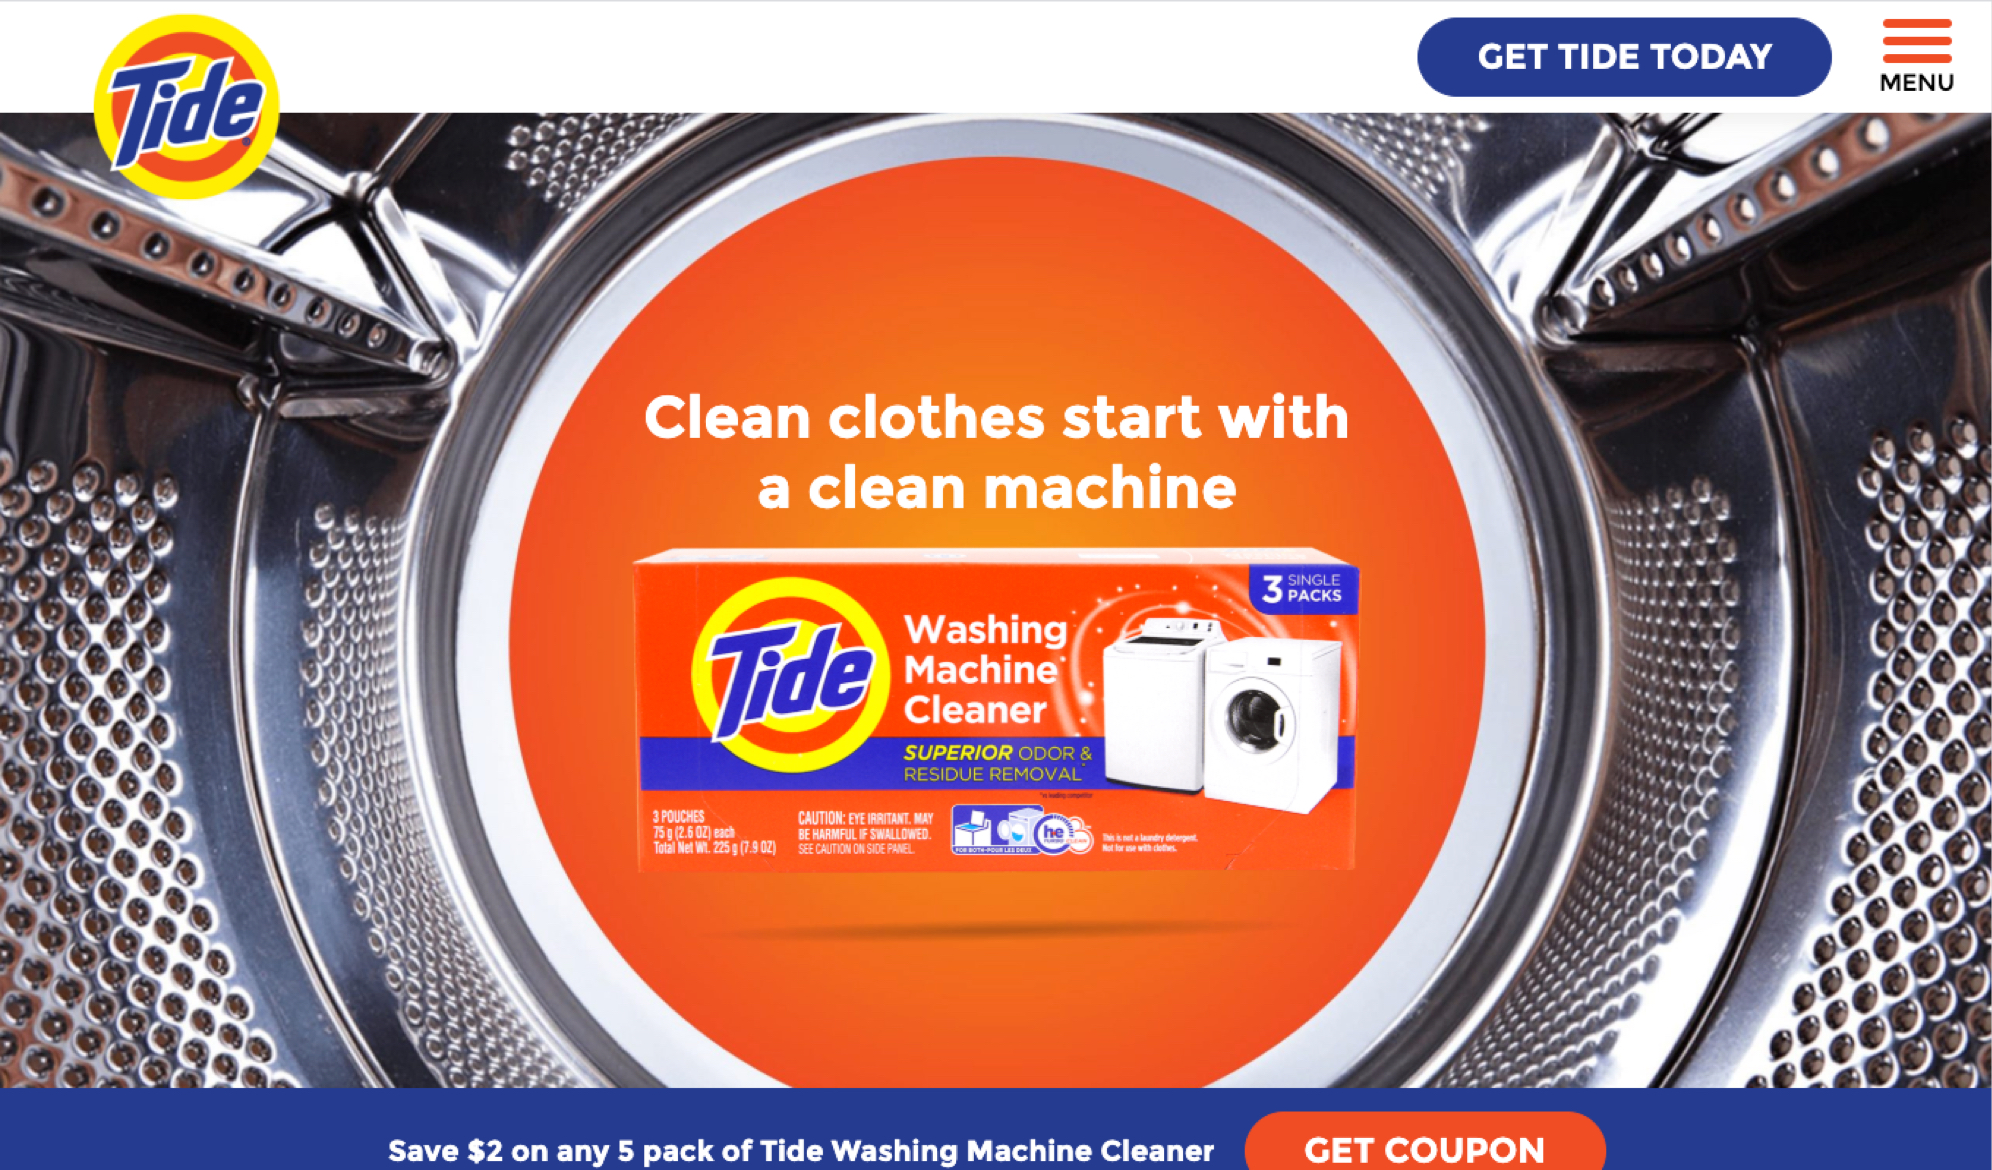 Tide homepage hero